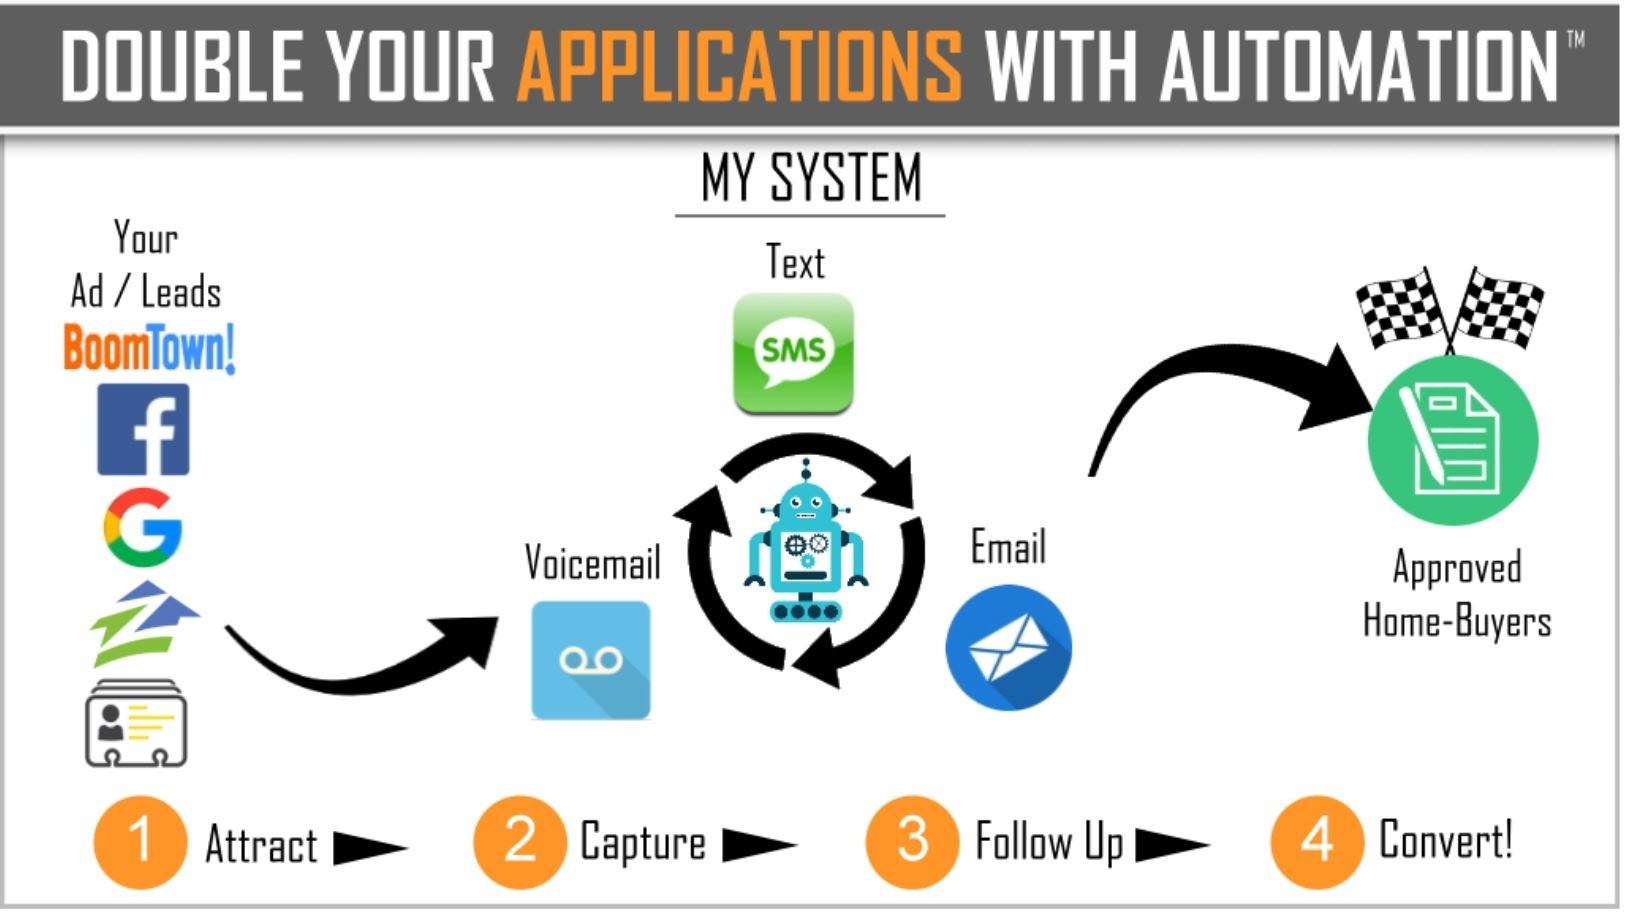 automation for banking and mortgage operations image